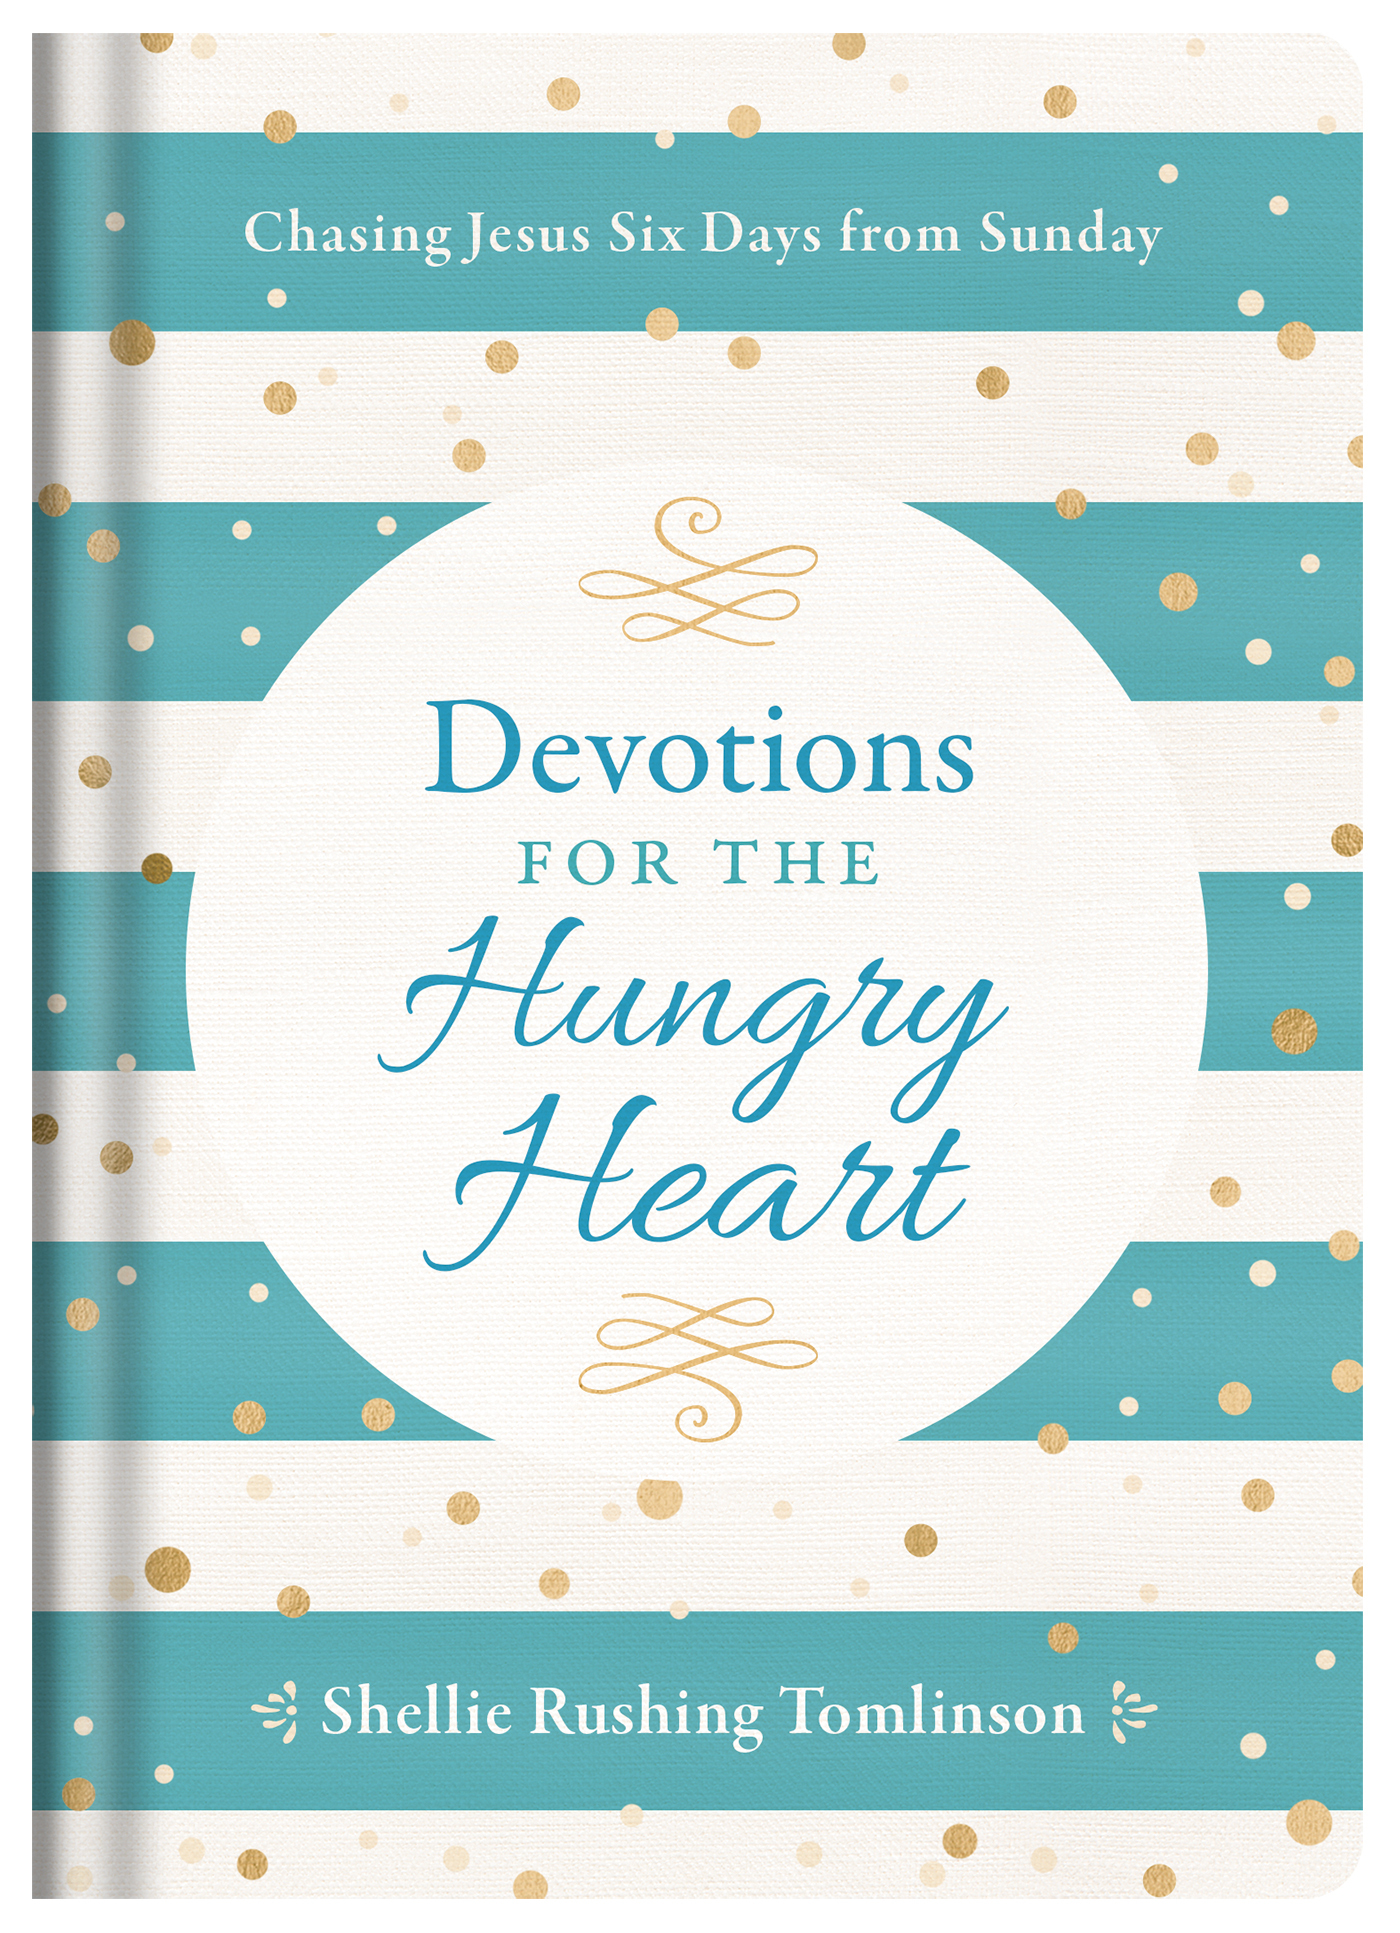 Devotions for the Hungry Heart Chasing Jesus Six Days from Sunday